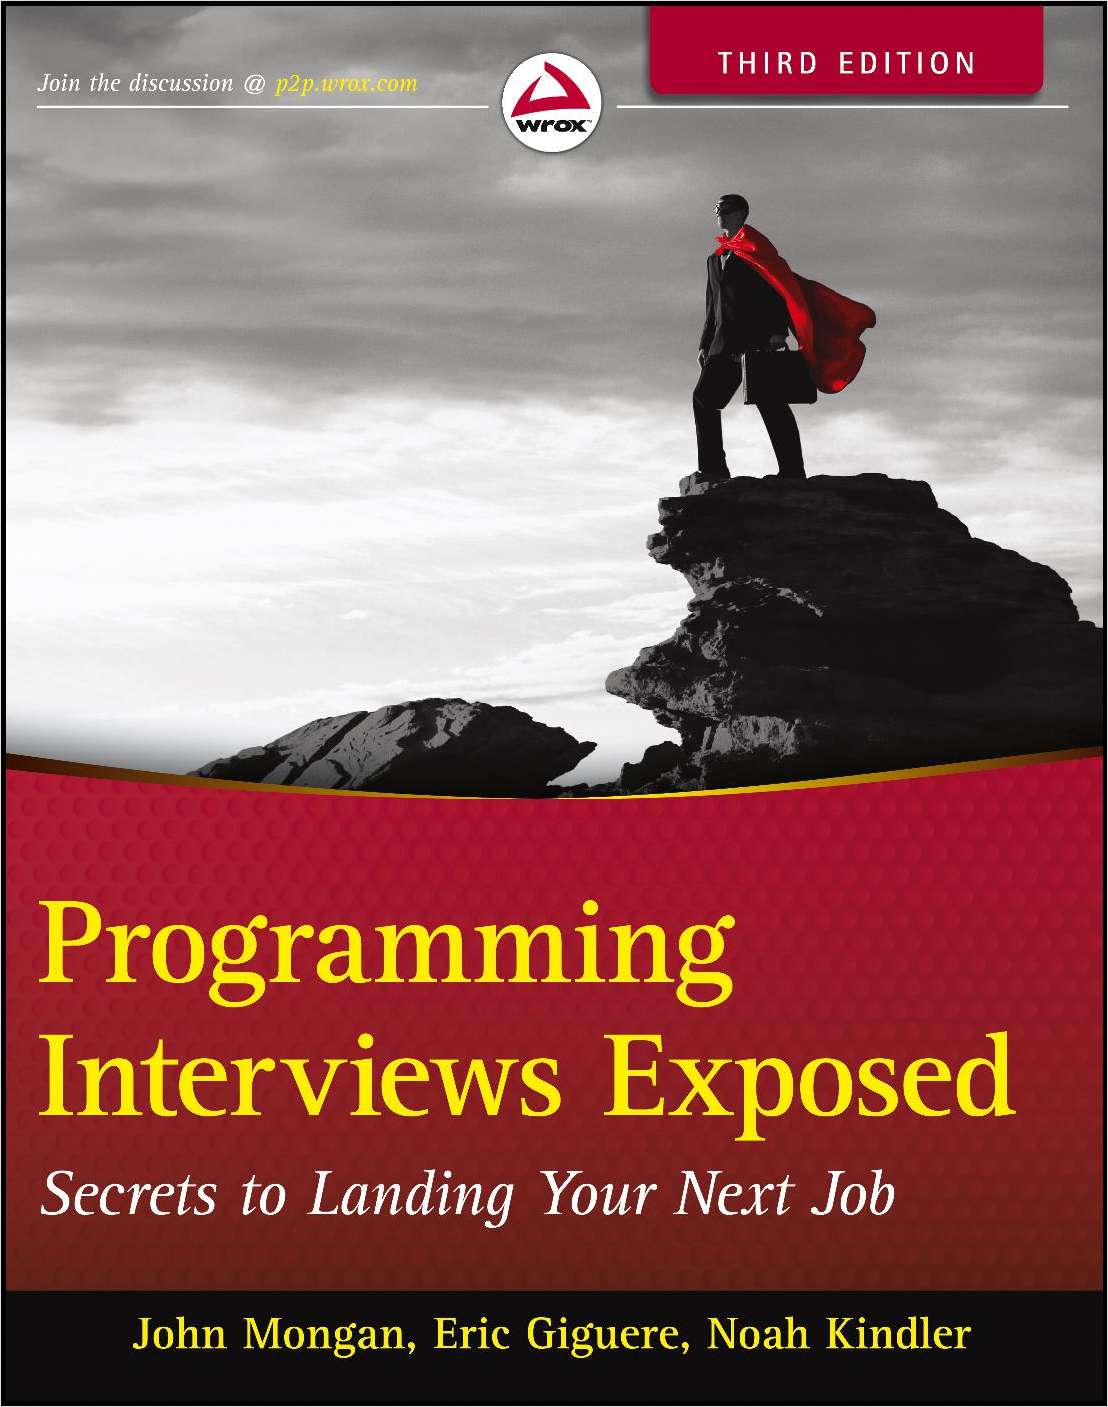 Programming Interviews Exposed: Secrets to Landing Your Next Job, 3rd Edition-- Complimentary Excerpt